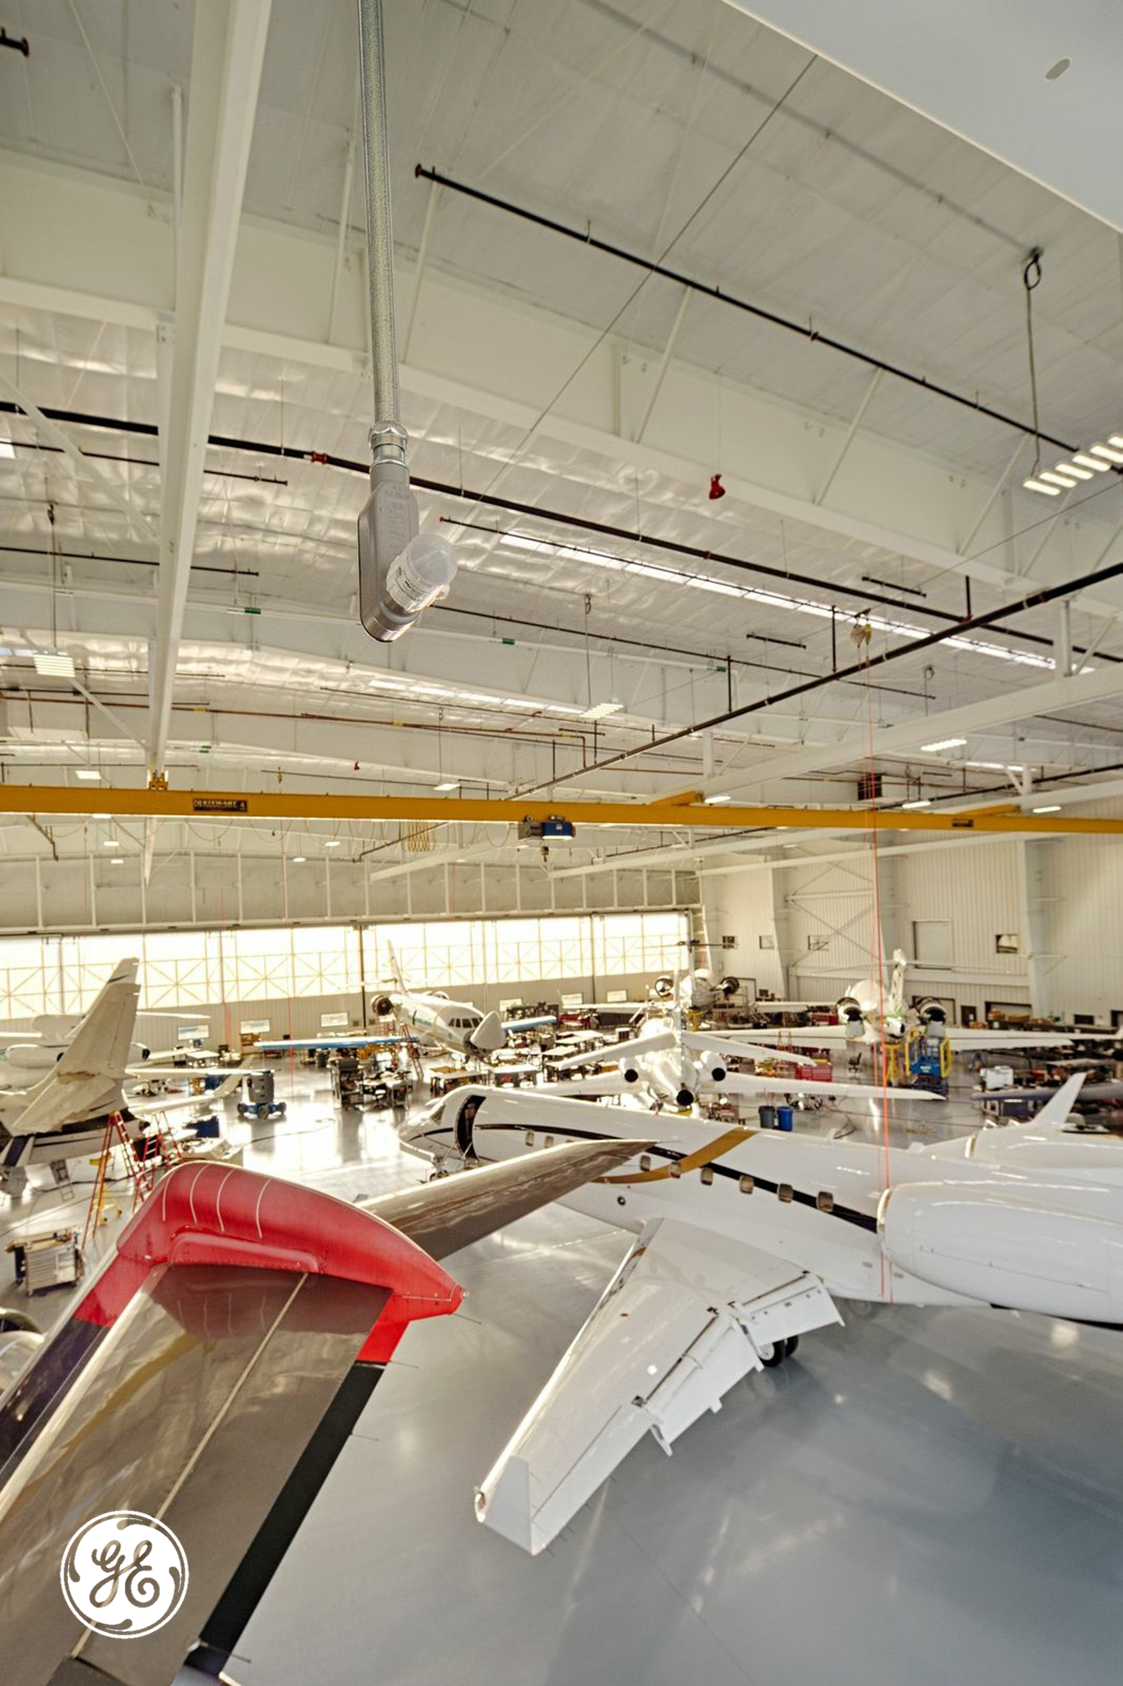 Officials With Duncan Aviation Understand Their Maintenance Workers Deserve The Best Lighting Possible To Help Them Do Their Jobs